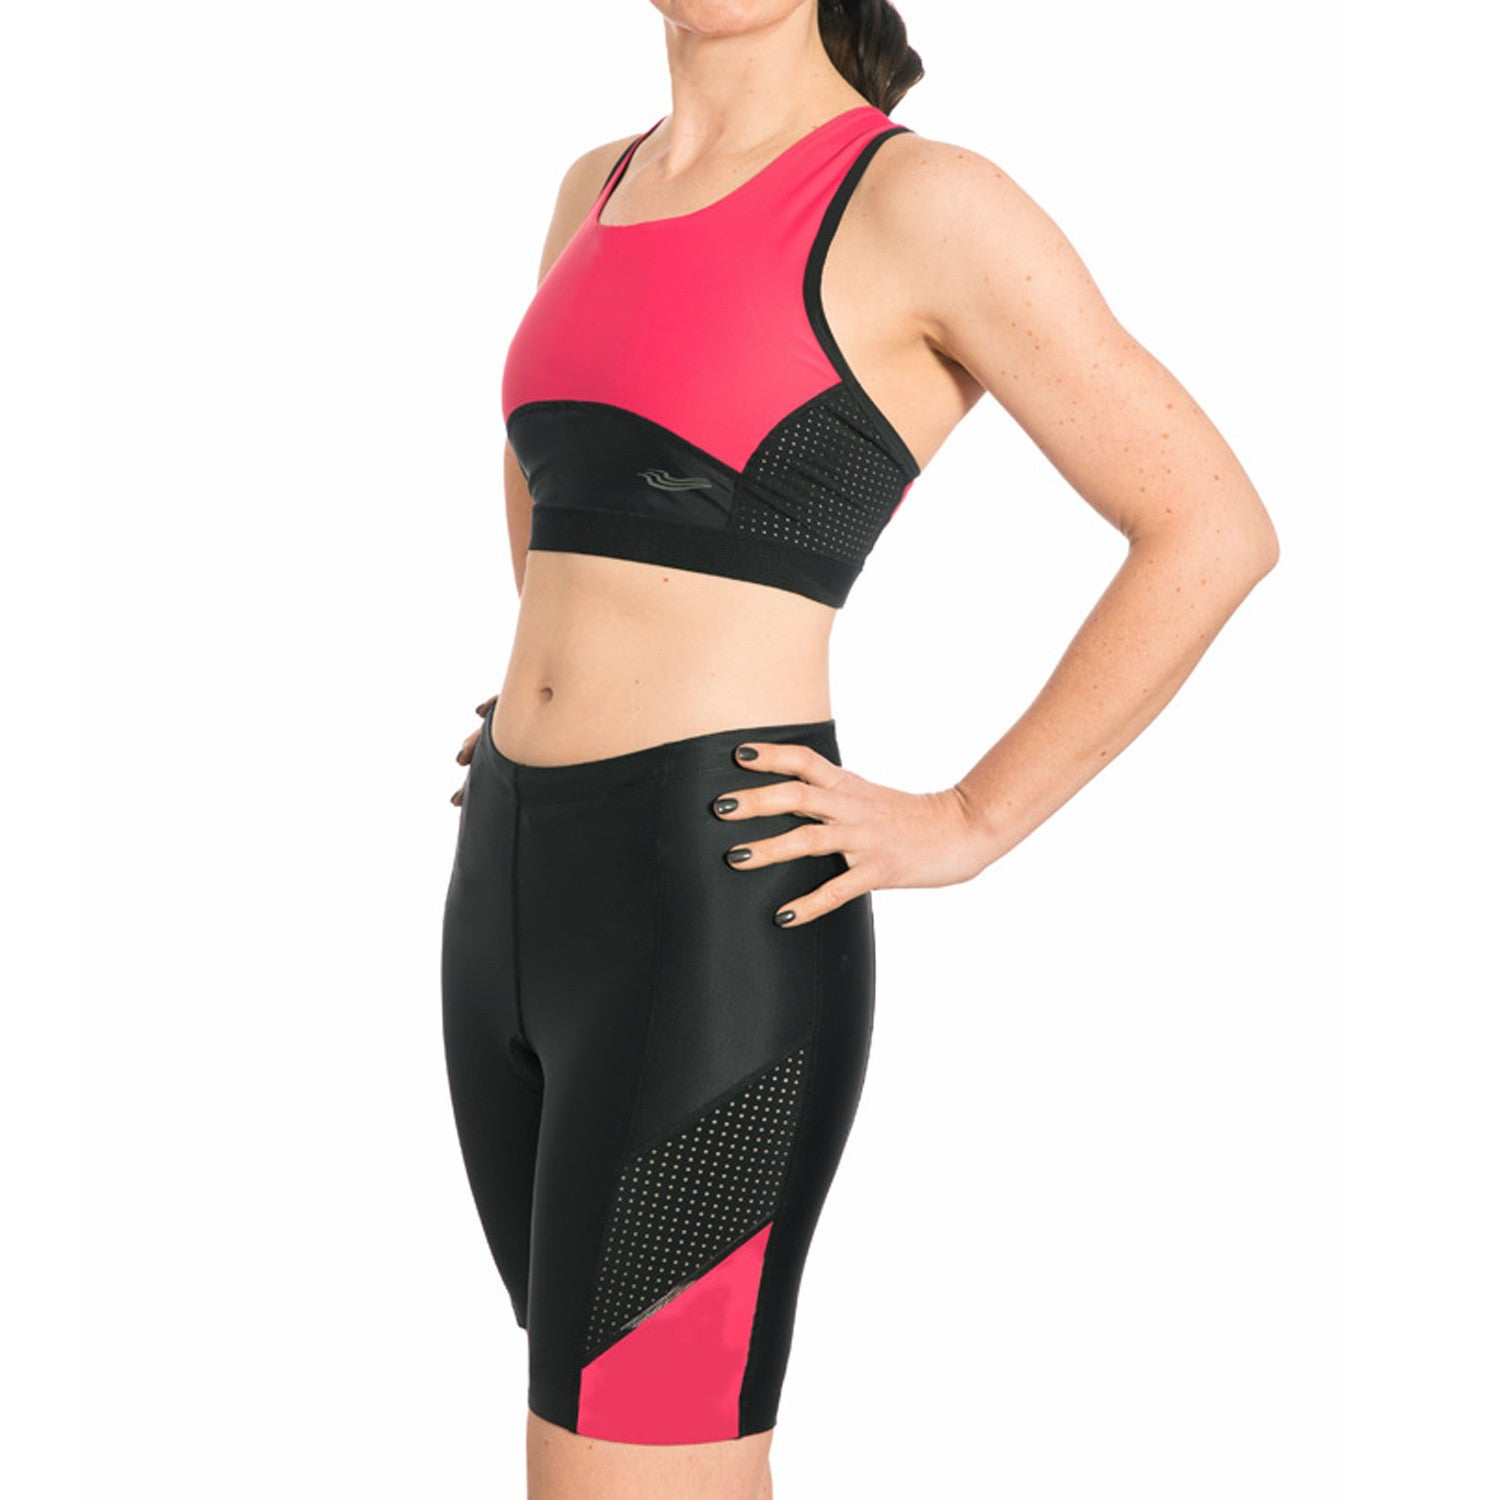 Pink triathlon suit - two piece set with a crop top and matching shorts, 15% discount